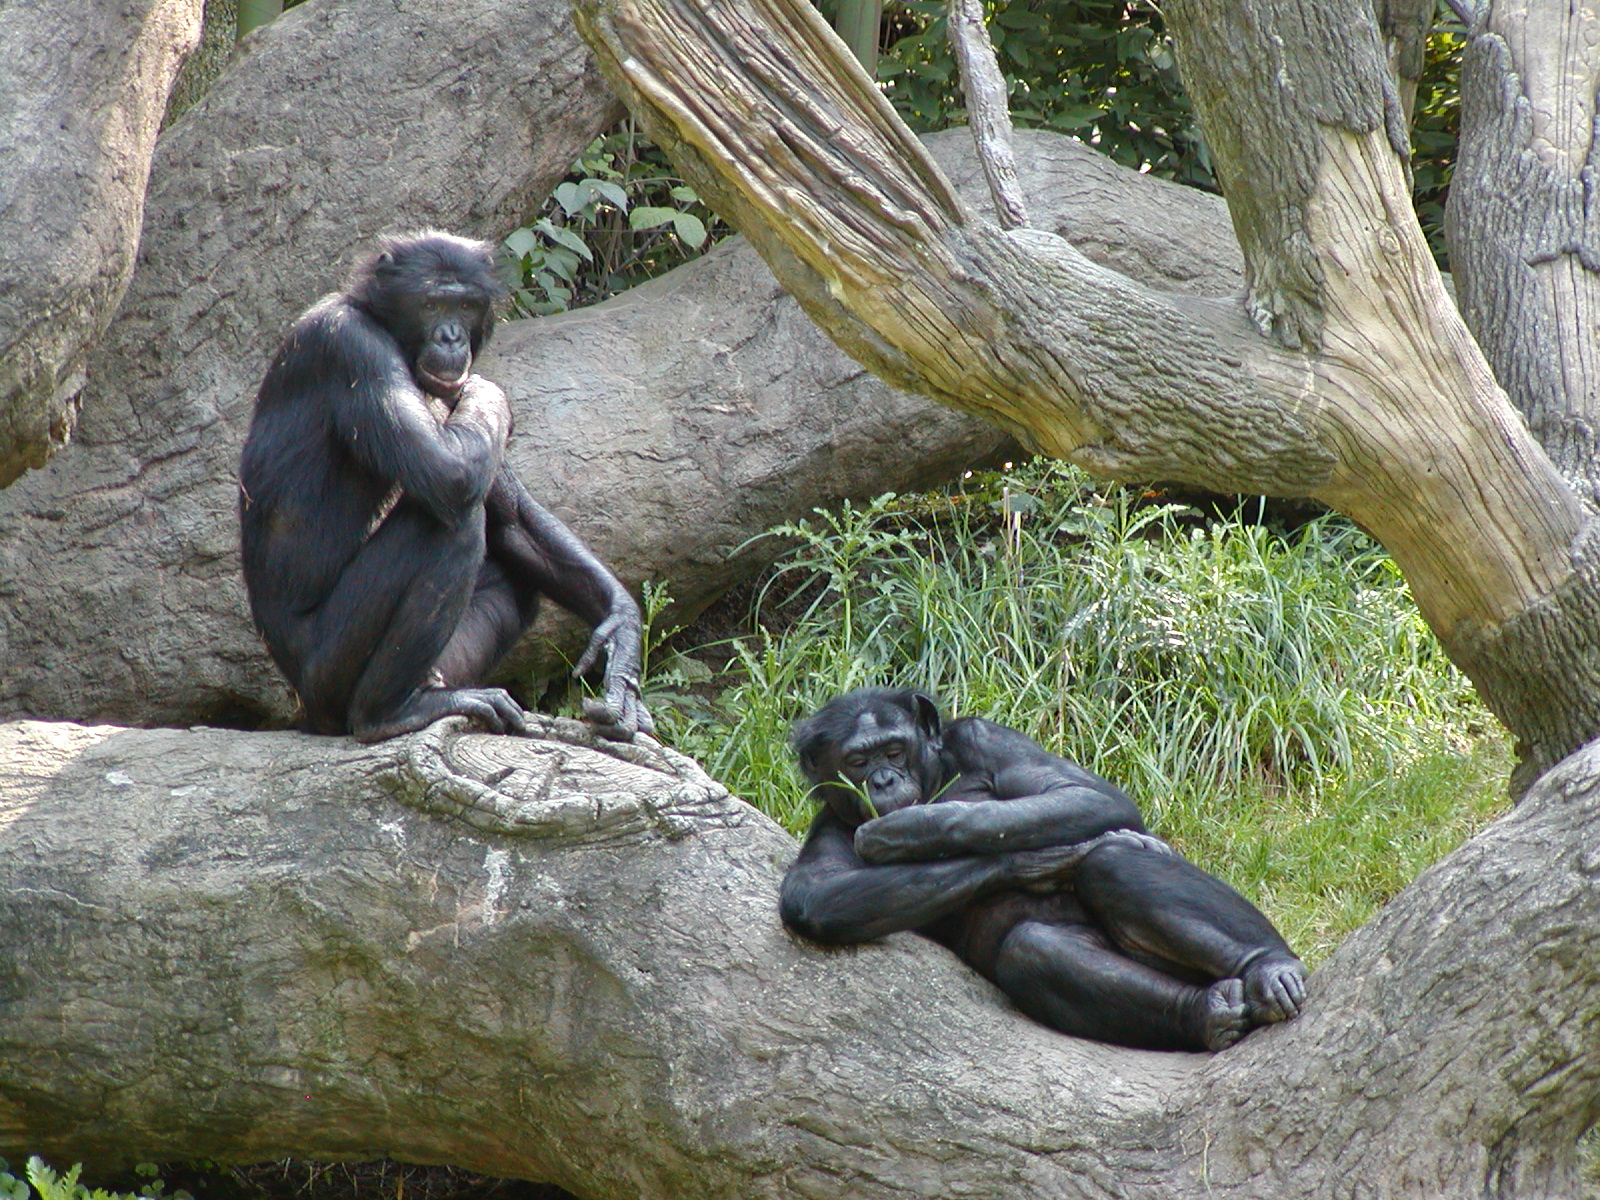 https://upload.wikimedia.org/wikipedia/commons/a/a6/Bonobo-04.jpg